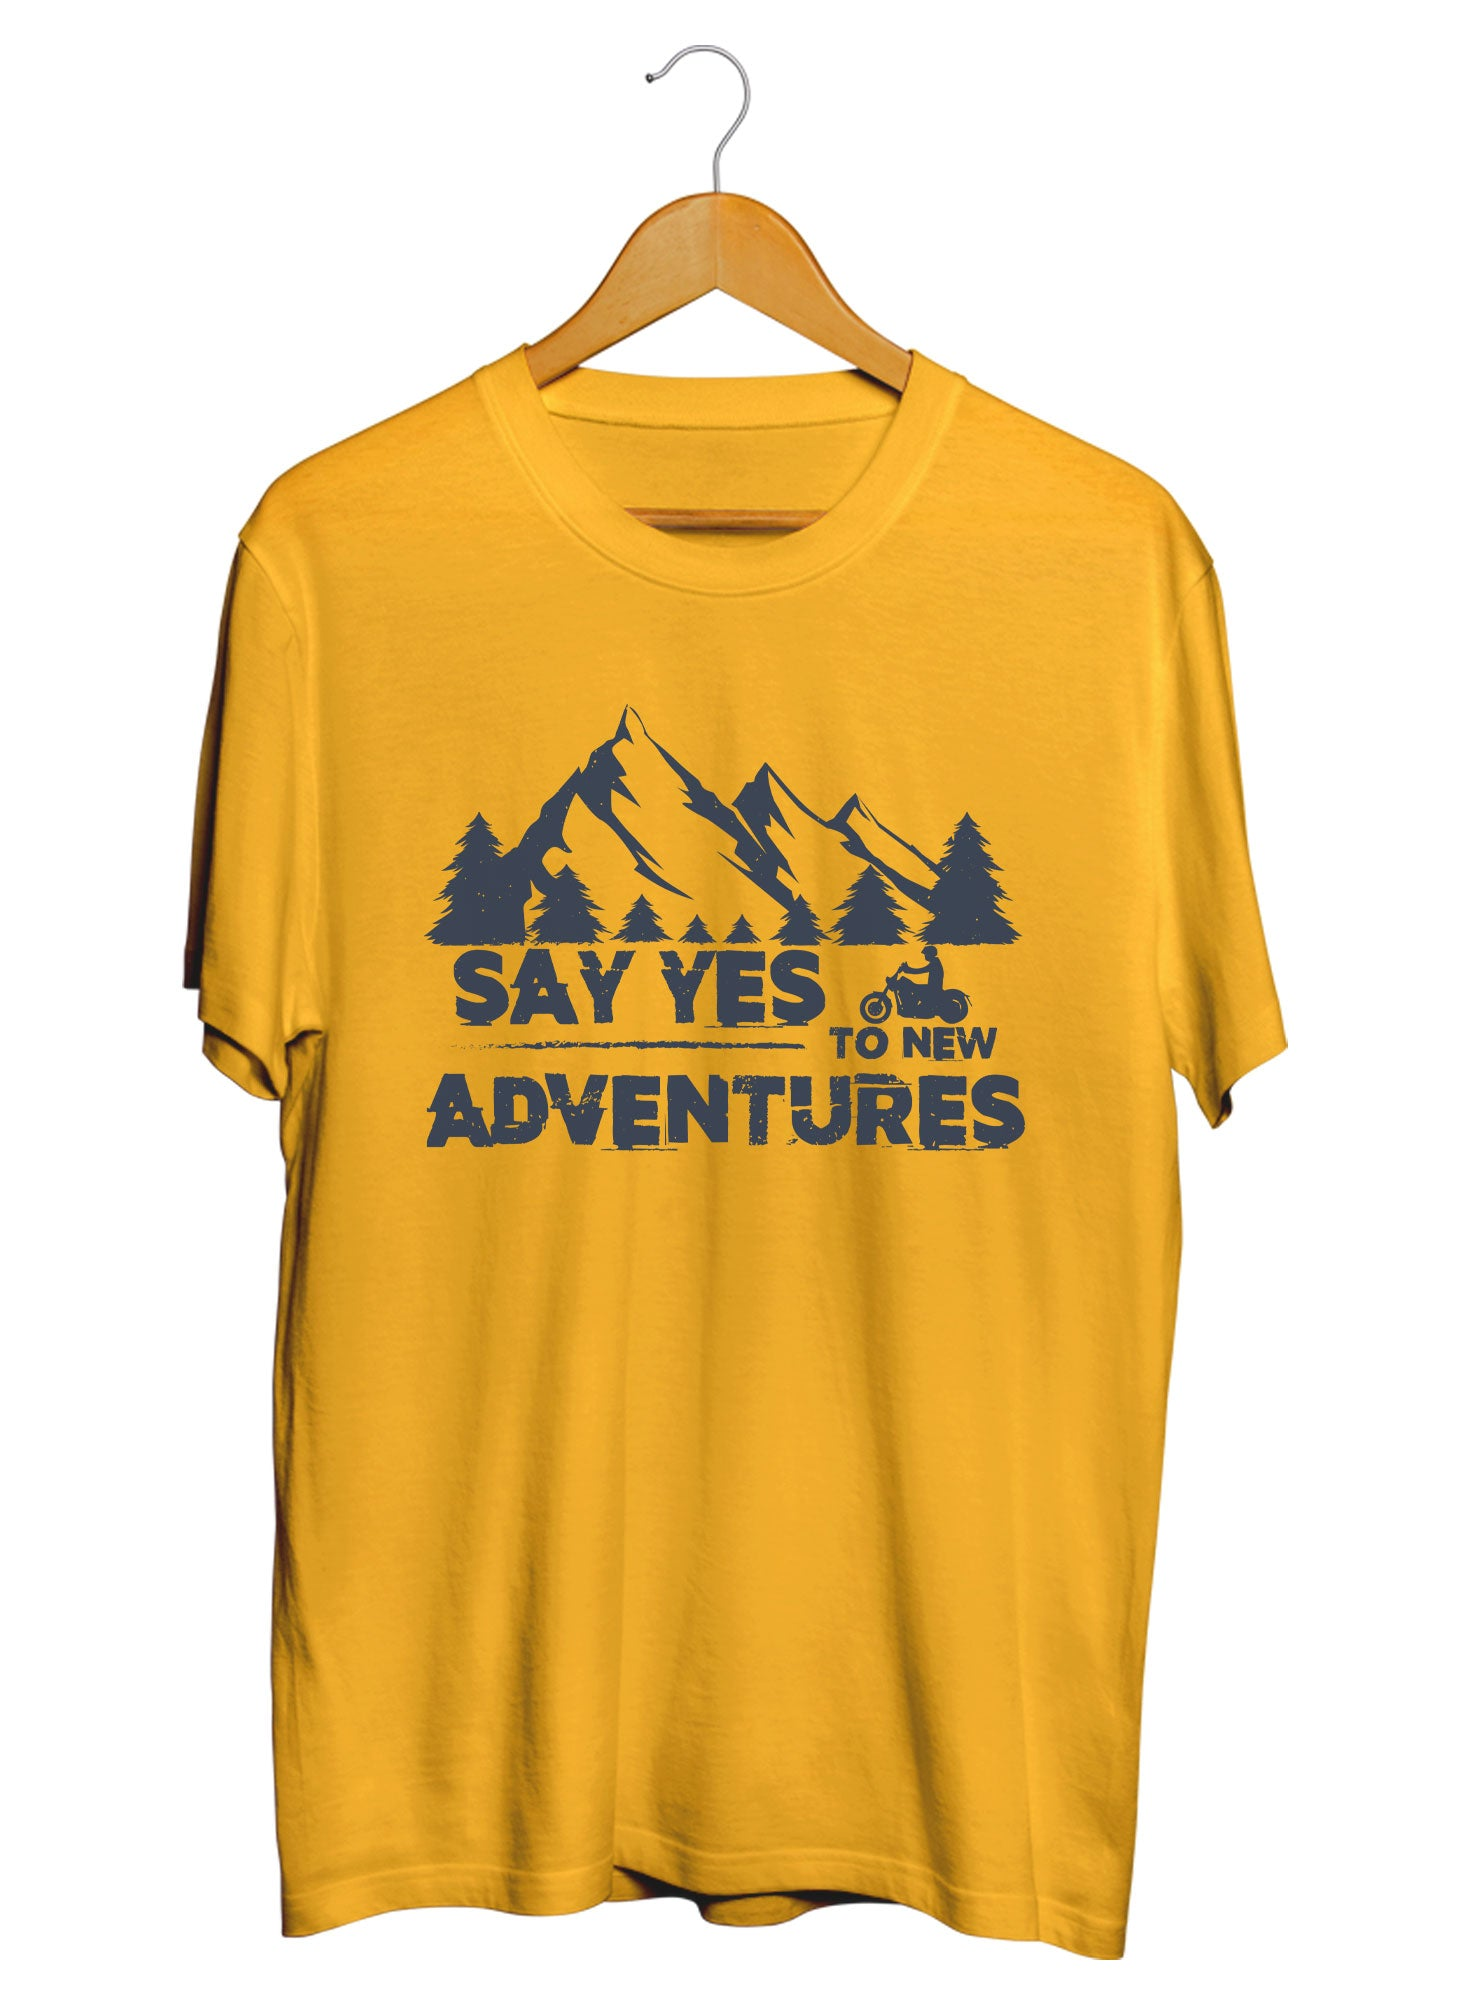 New Adventures T-shirts